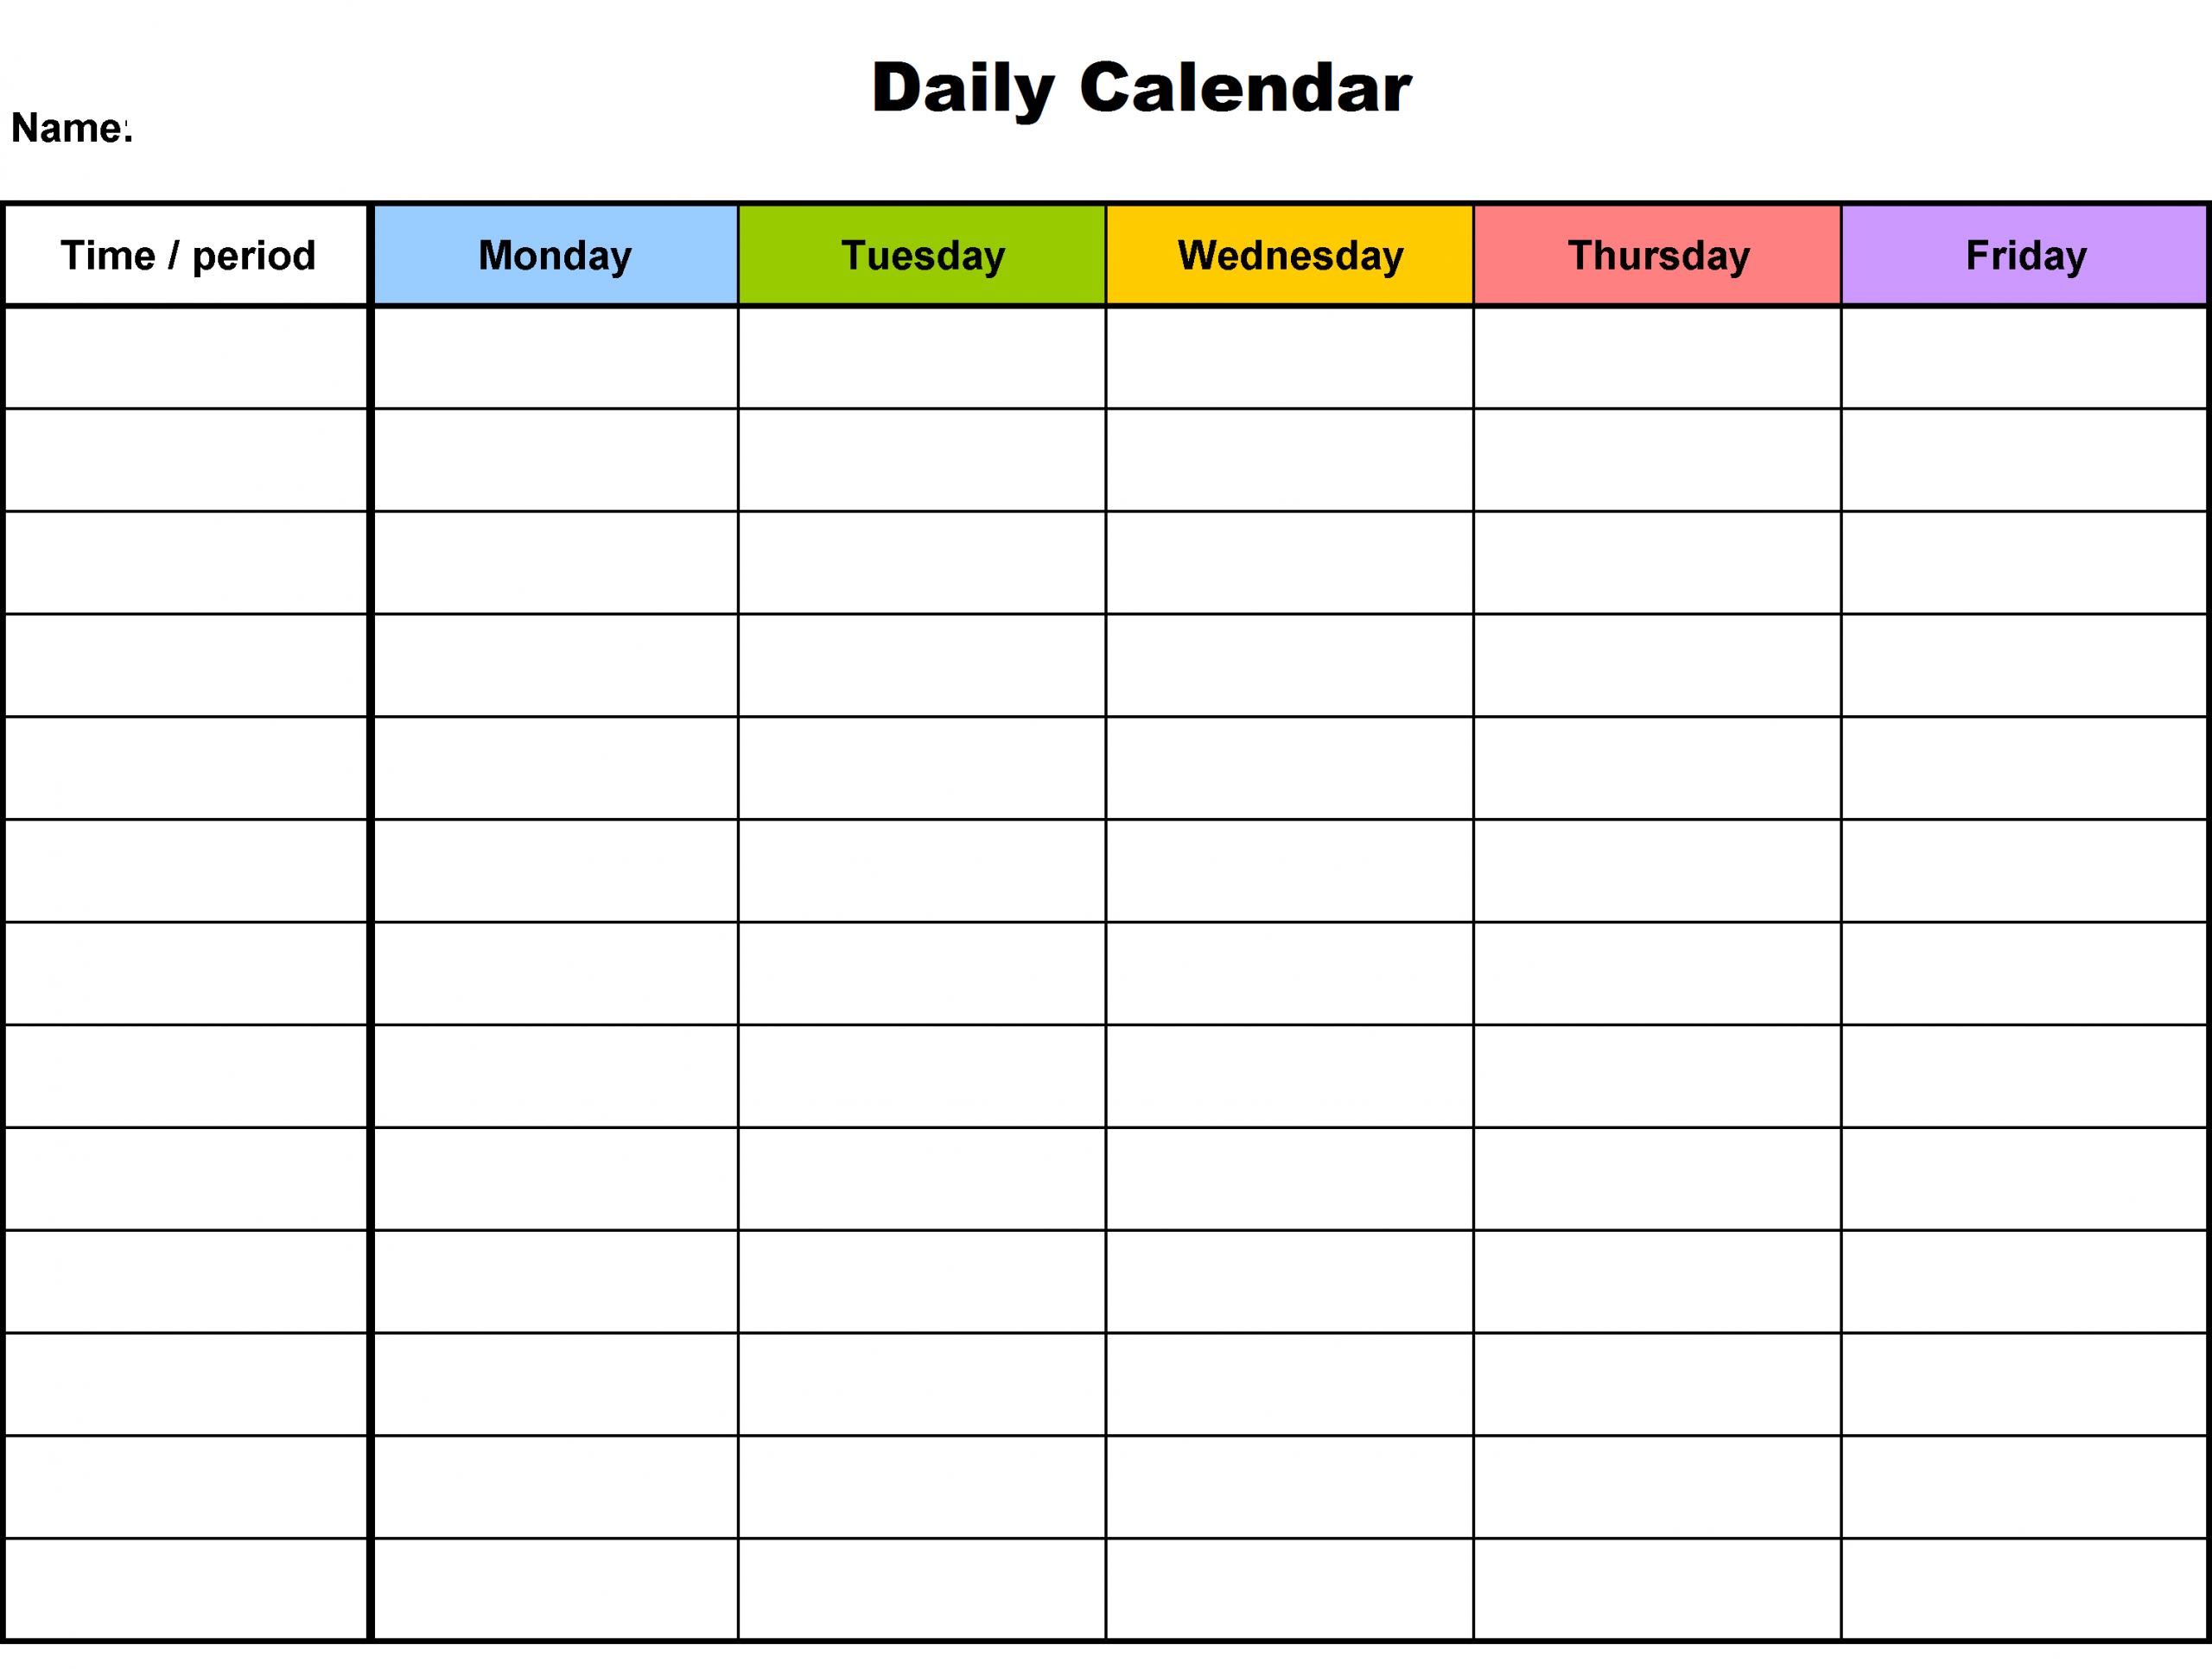 Daily Blank Calendar Template Daily Schedule Template